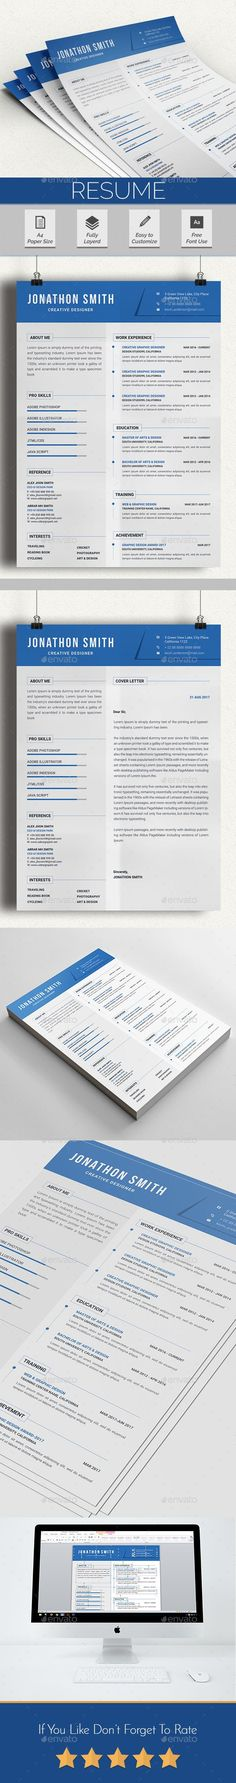 Buy Resume by Abd_Pixel on GraphicRiver. Resume/cv with Cover Letter Design Main Features with with Bleeds Very Well Organized Files Resume/C. Resume Words, Resume Cv, Resume Writing, Resume Design, Design Web, Best Resume Template, Cv Template, Cover Page Template, Cover Letter Design